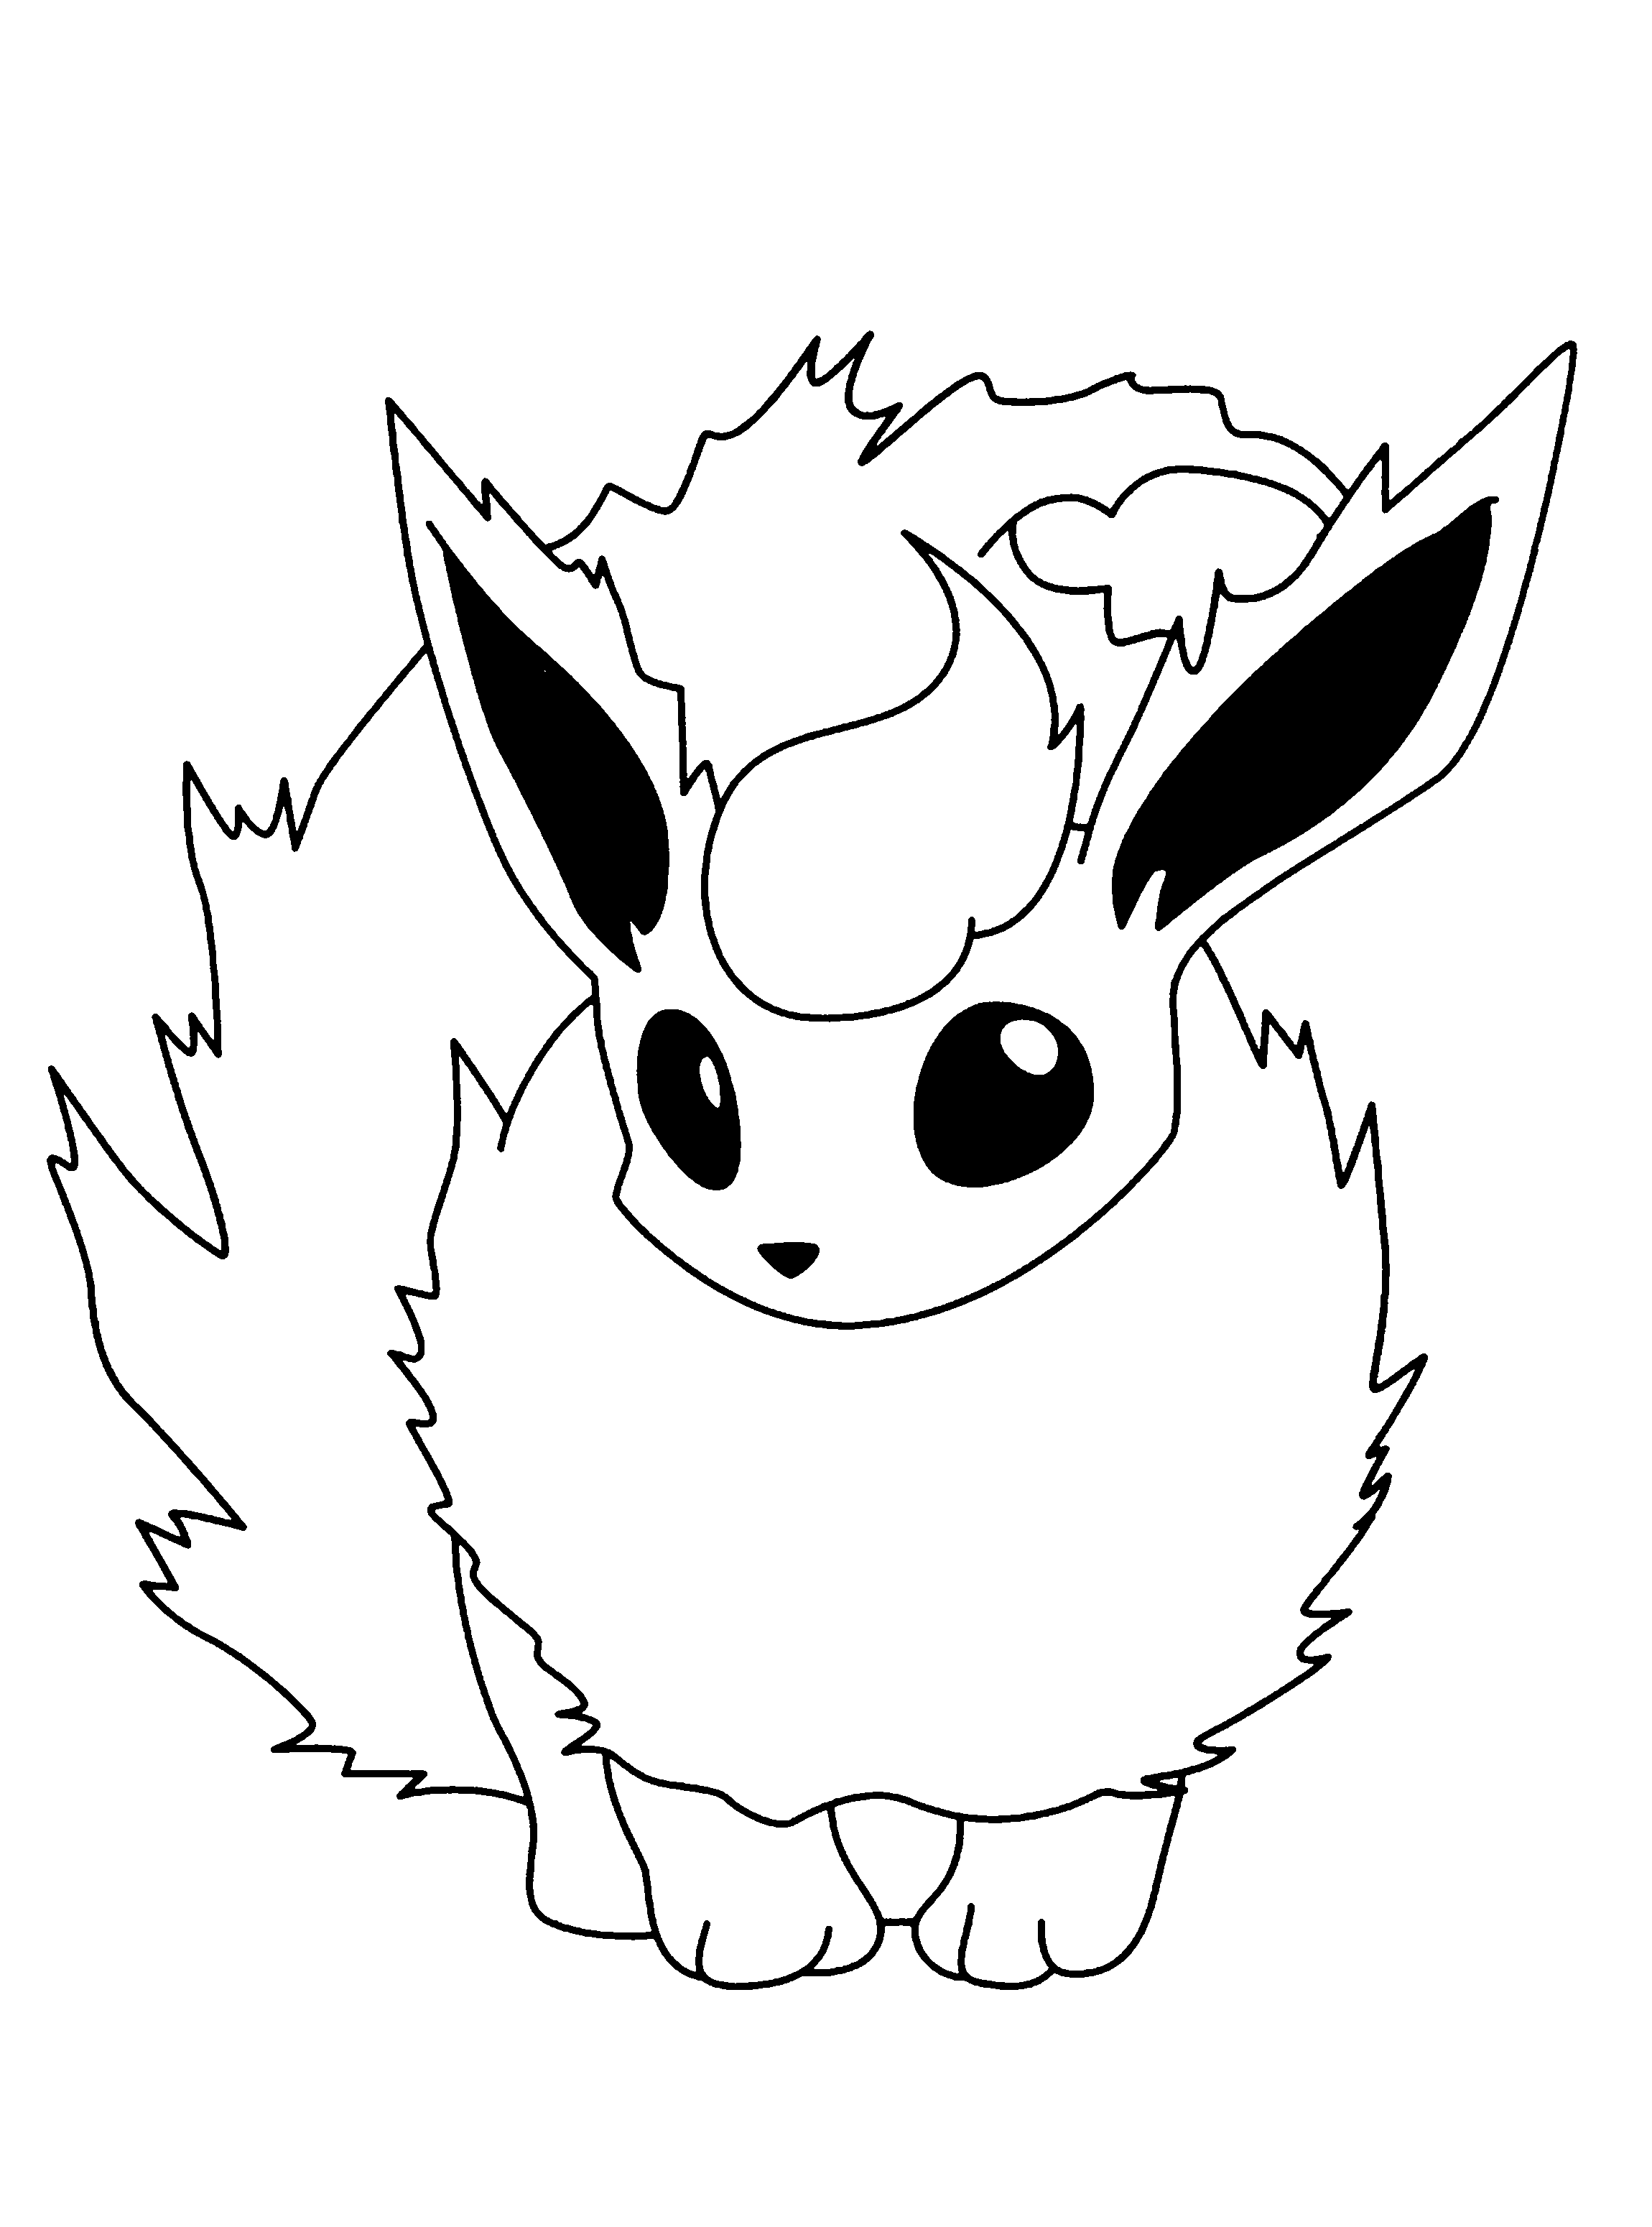 pokemon coloring pages download pokemon images and print them for - Coloring Pages Pokemon Characters